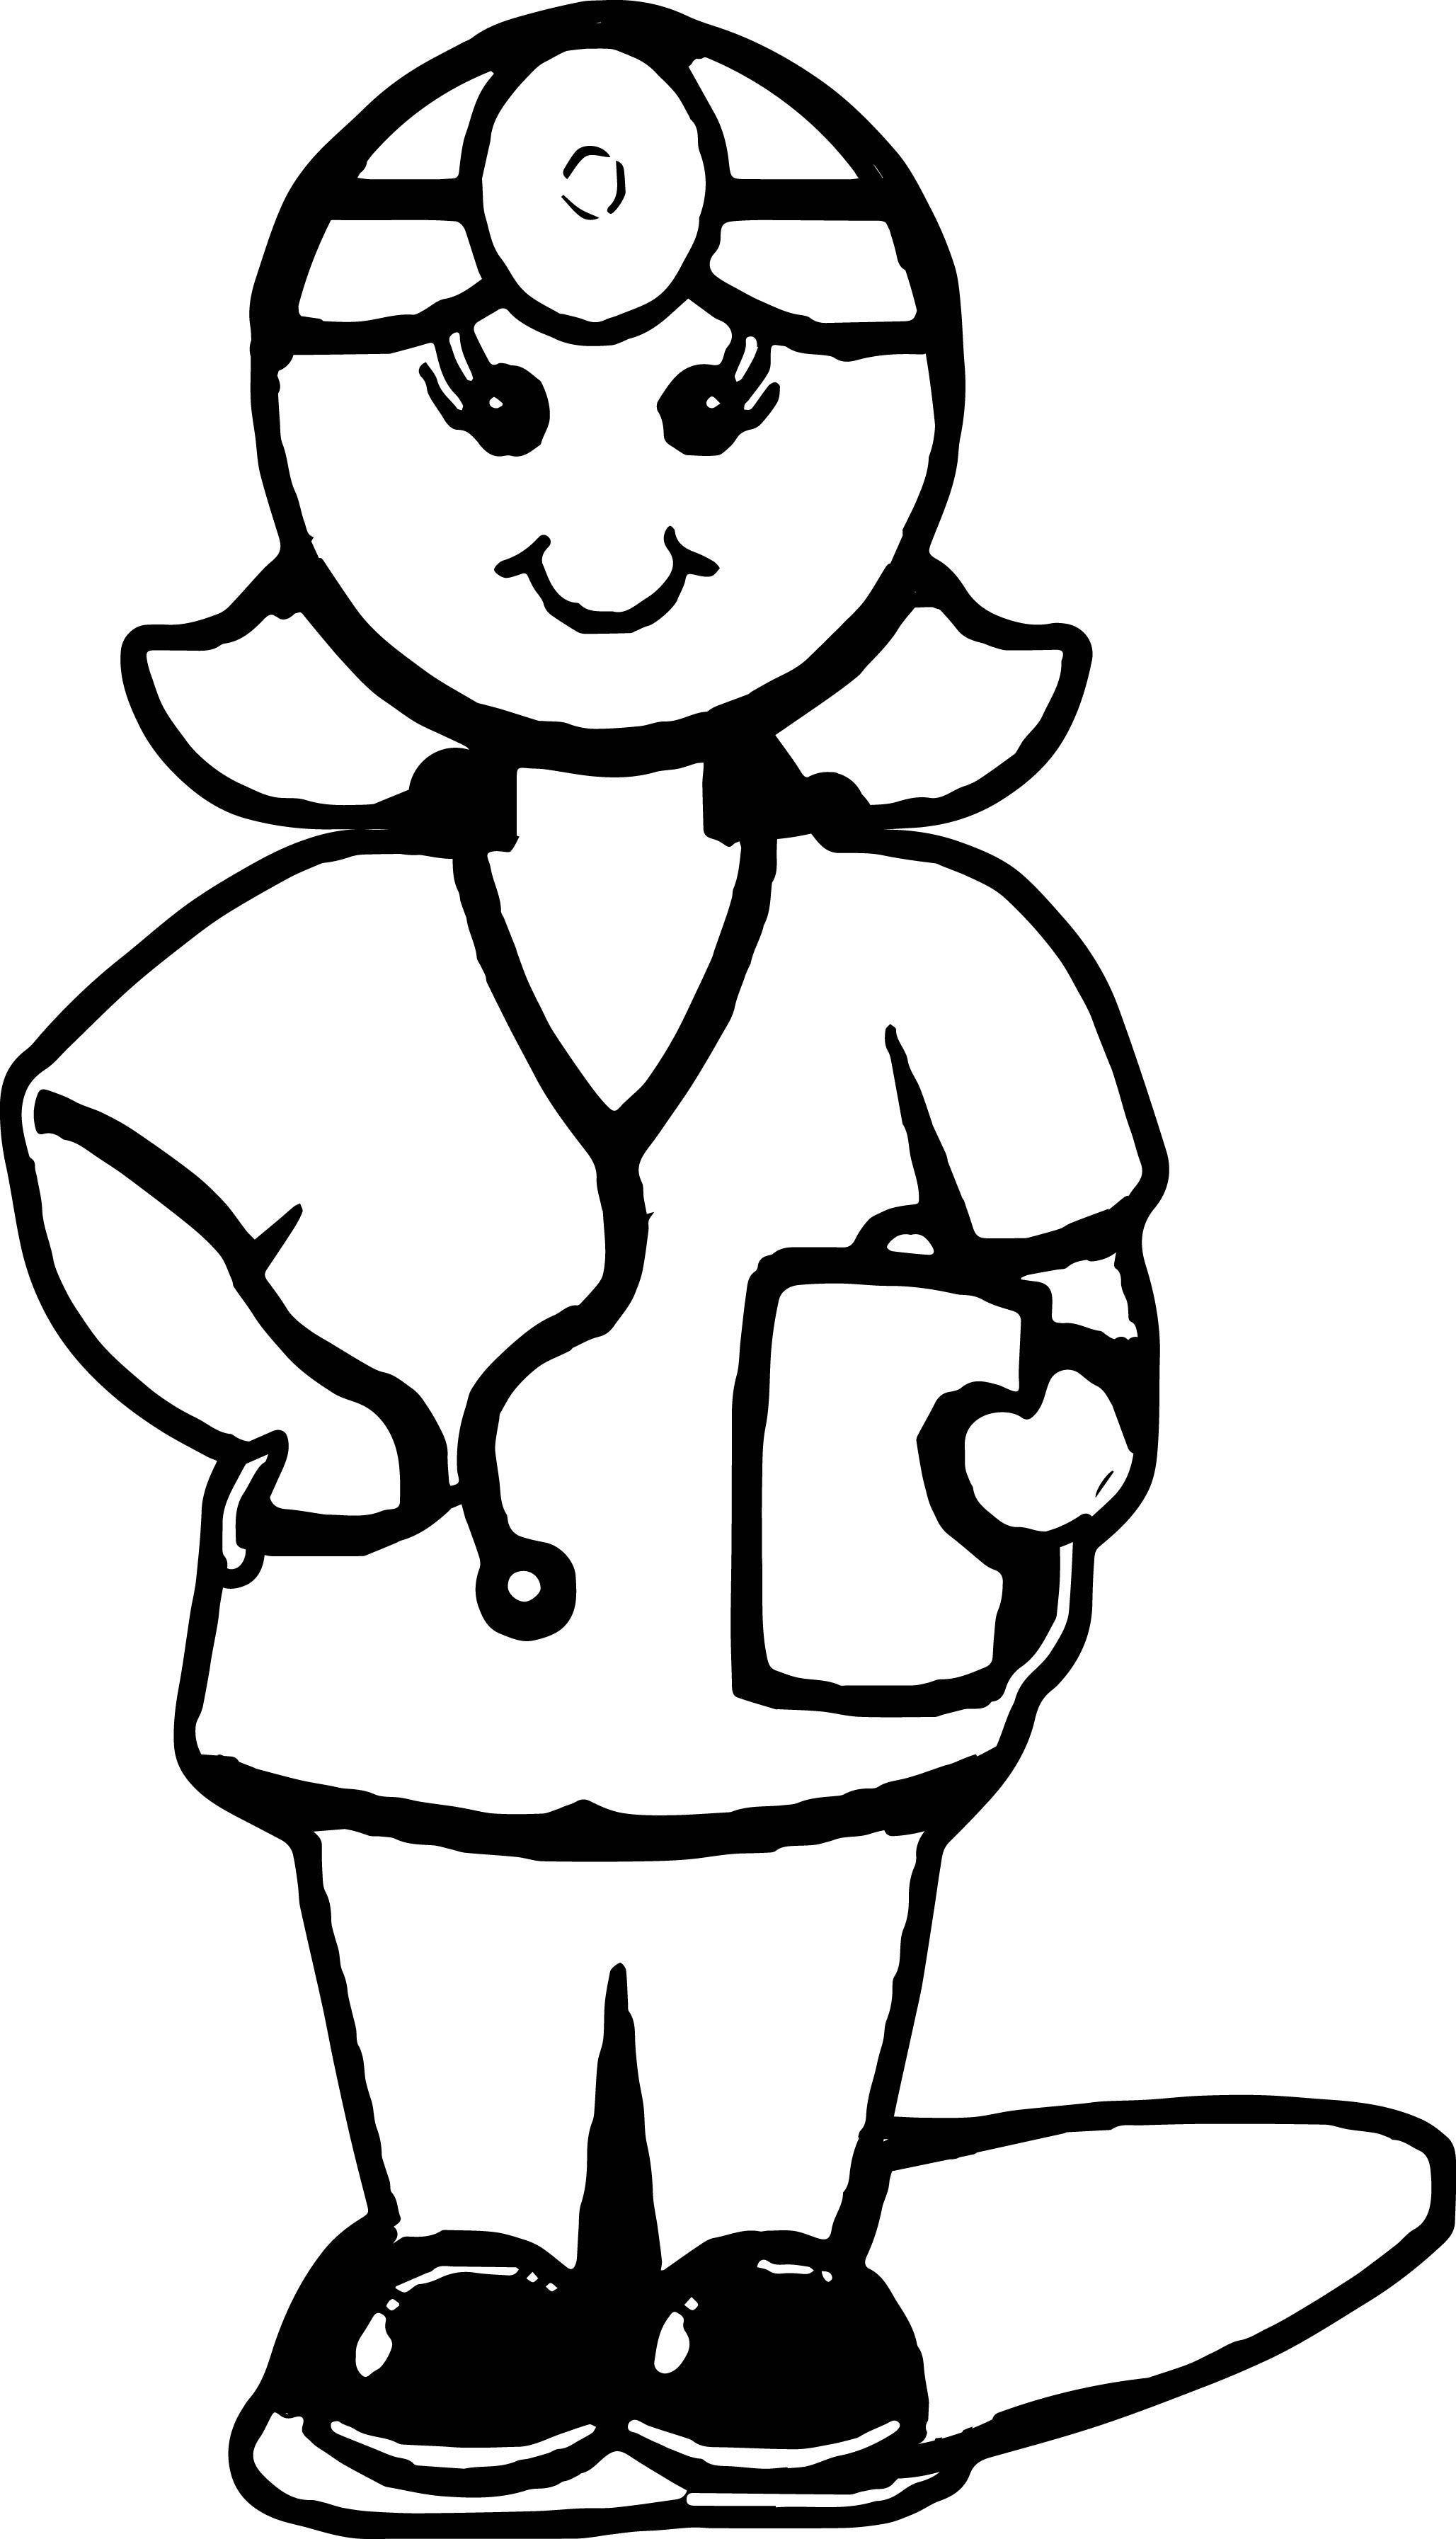 Cool Medical Doctor Cartoon Coloring Page Cartoon Coloring Pages